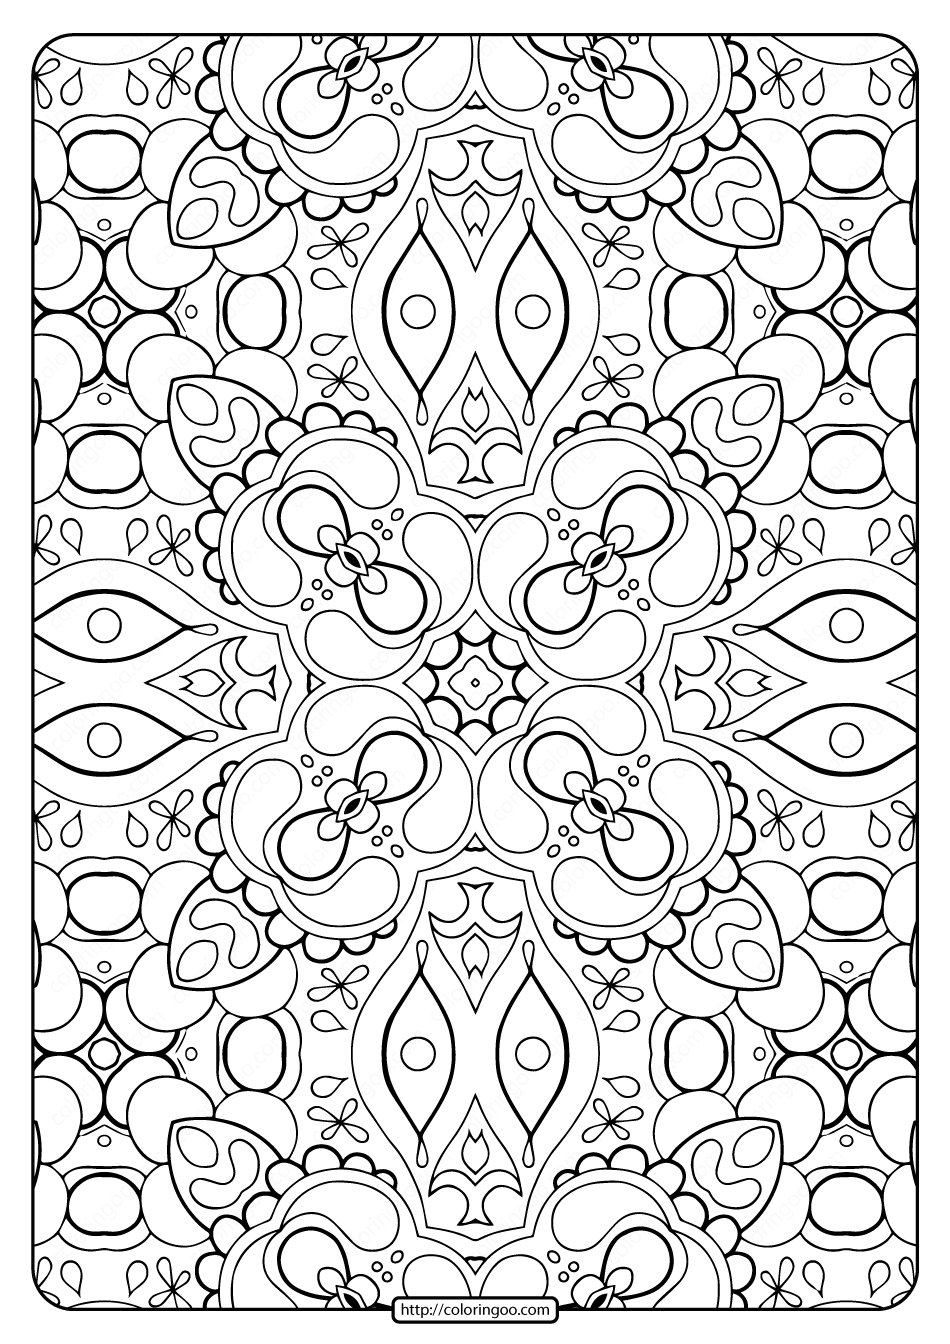 coloring pictures for adults 15 crazy busy coloring pages for adults free coloring pictures coloring adults for